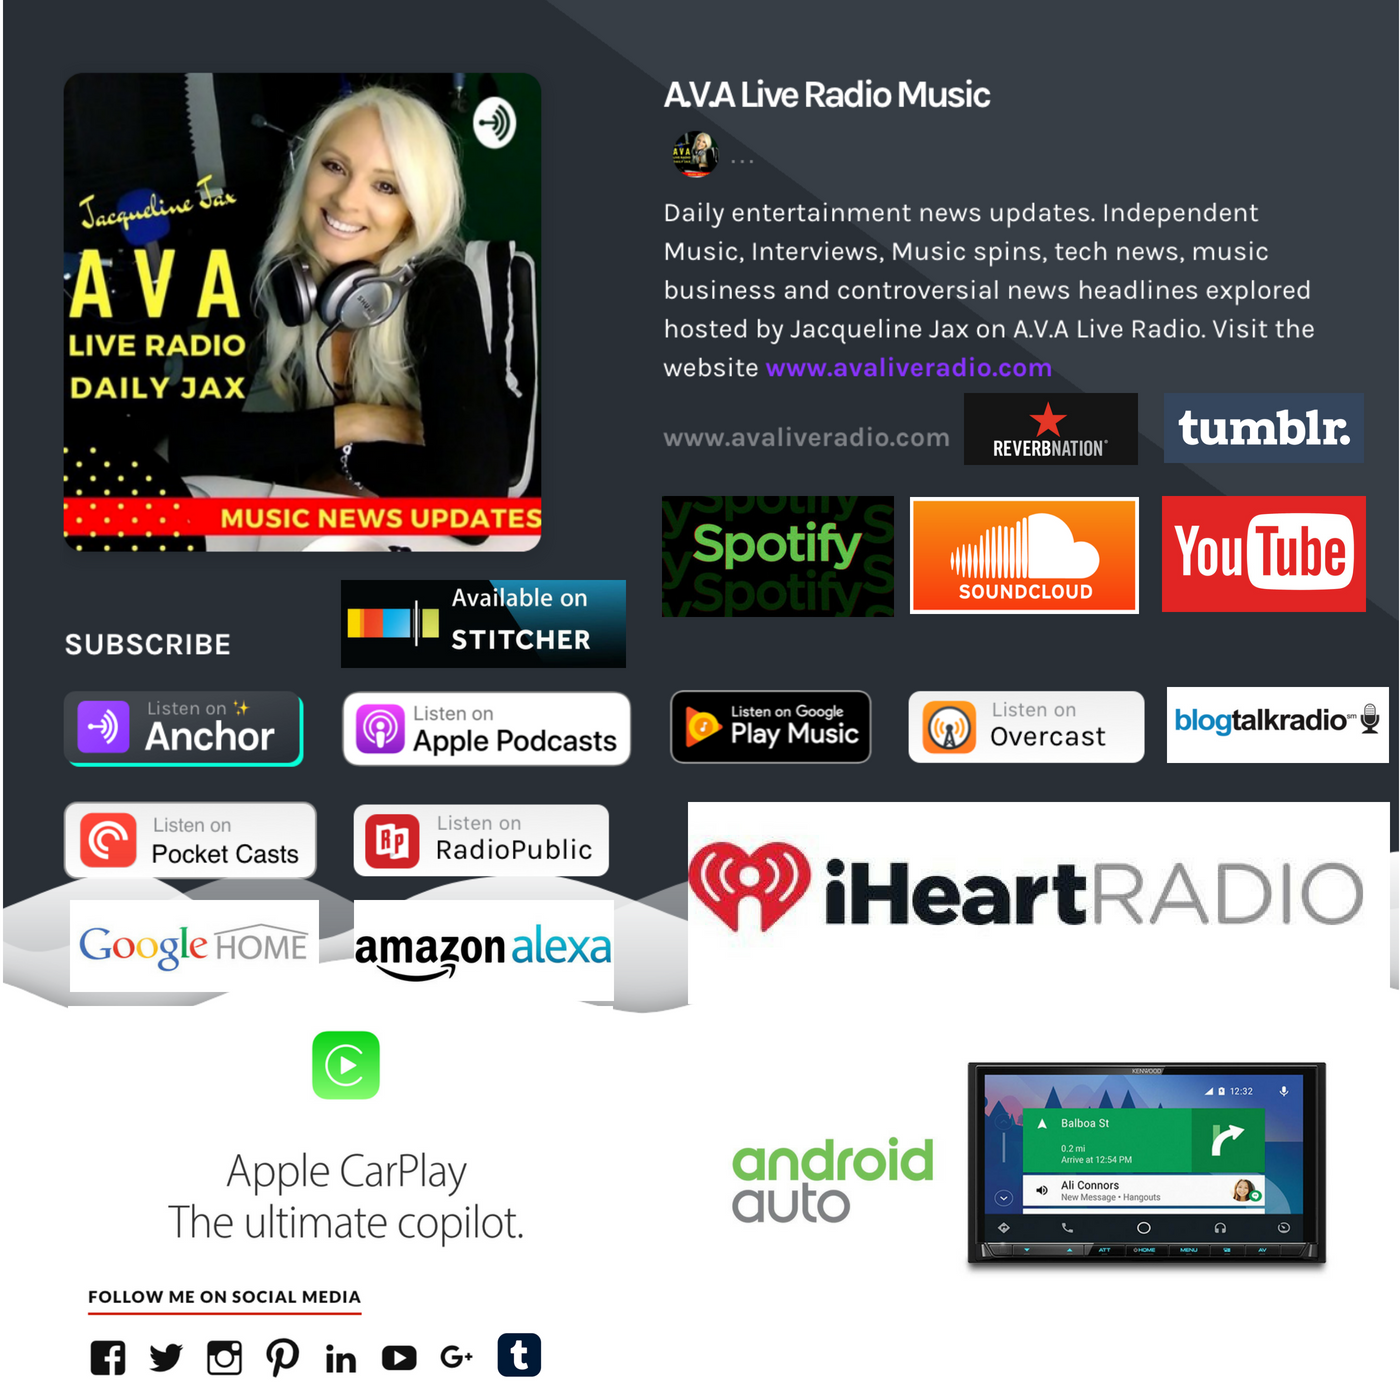 AVA Live Radio Joins the iHeartRadio Broadcasting Family